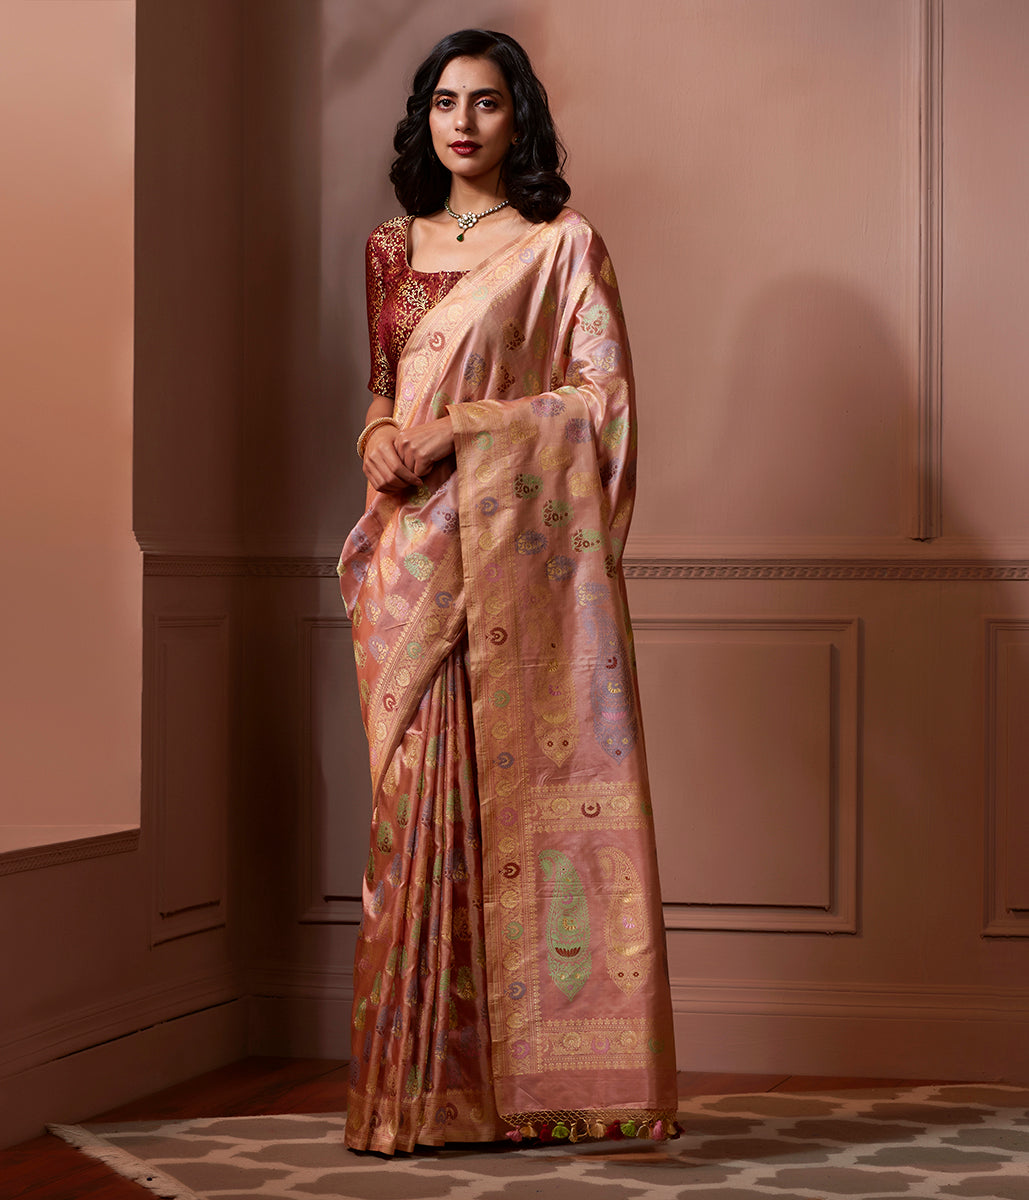 Banaras Baluchari saree in soft peach with meenakari